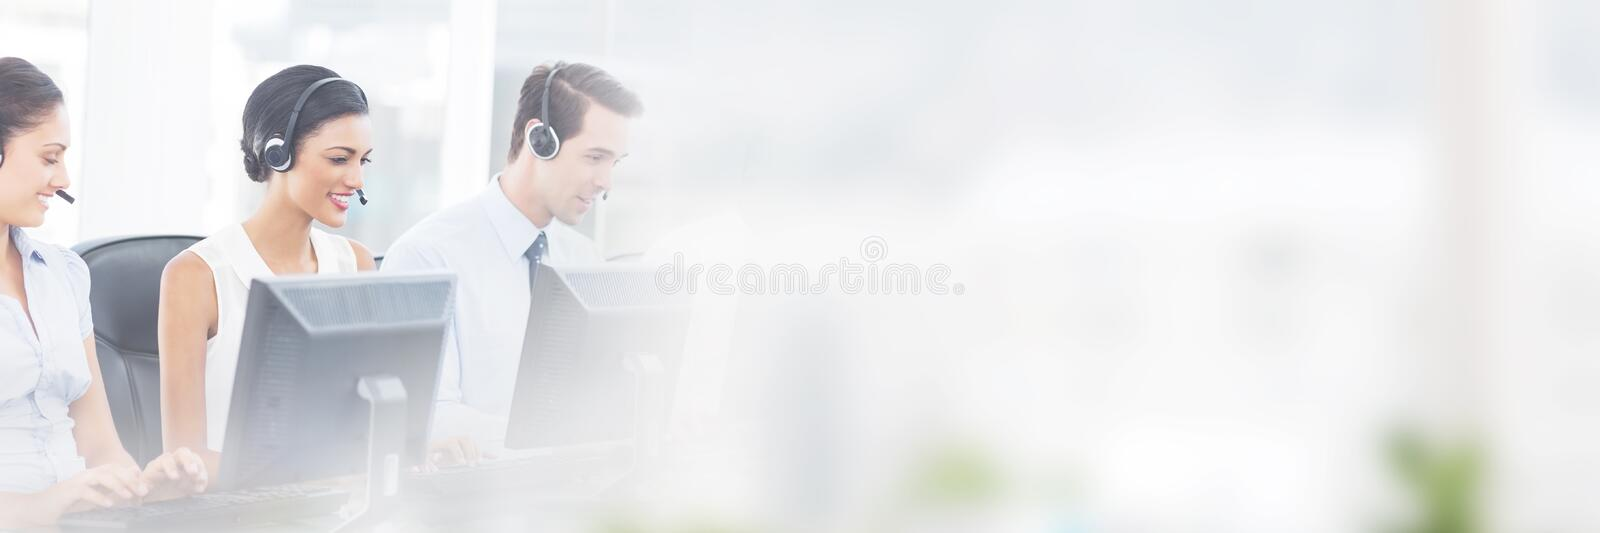 Call centre employees smiling while sitting royalty free stock images